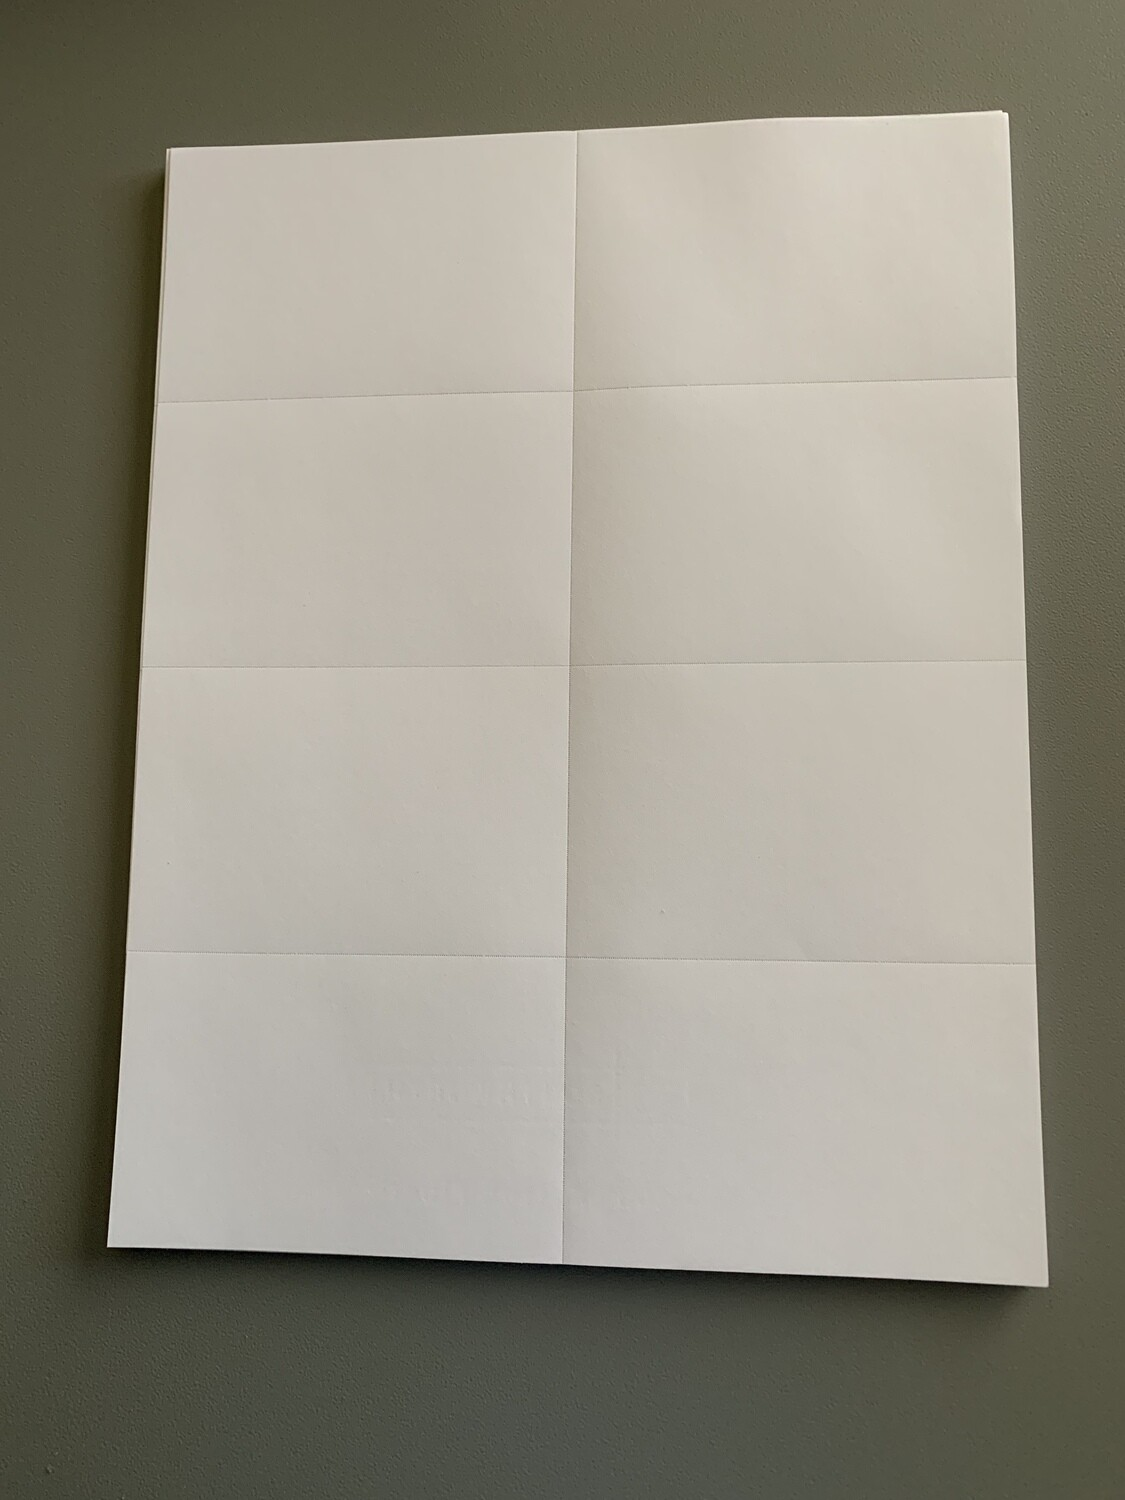 "Cotton Paper 8.5"" x 11"" (Plain or Perforated for Labels)"